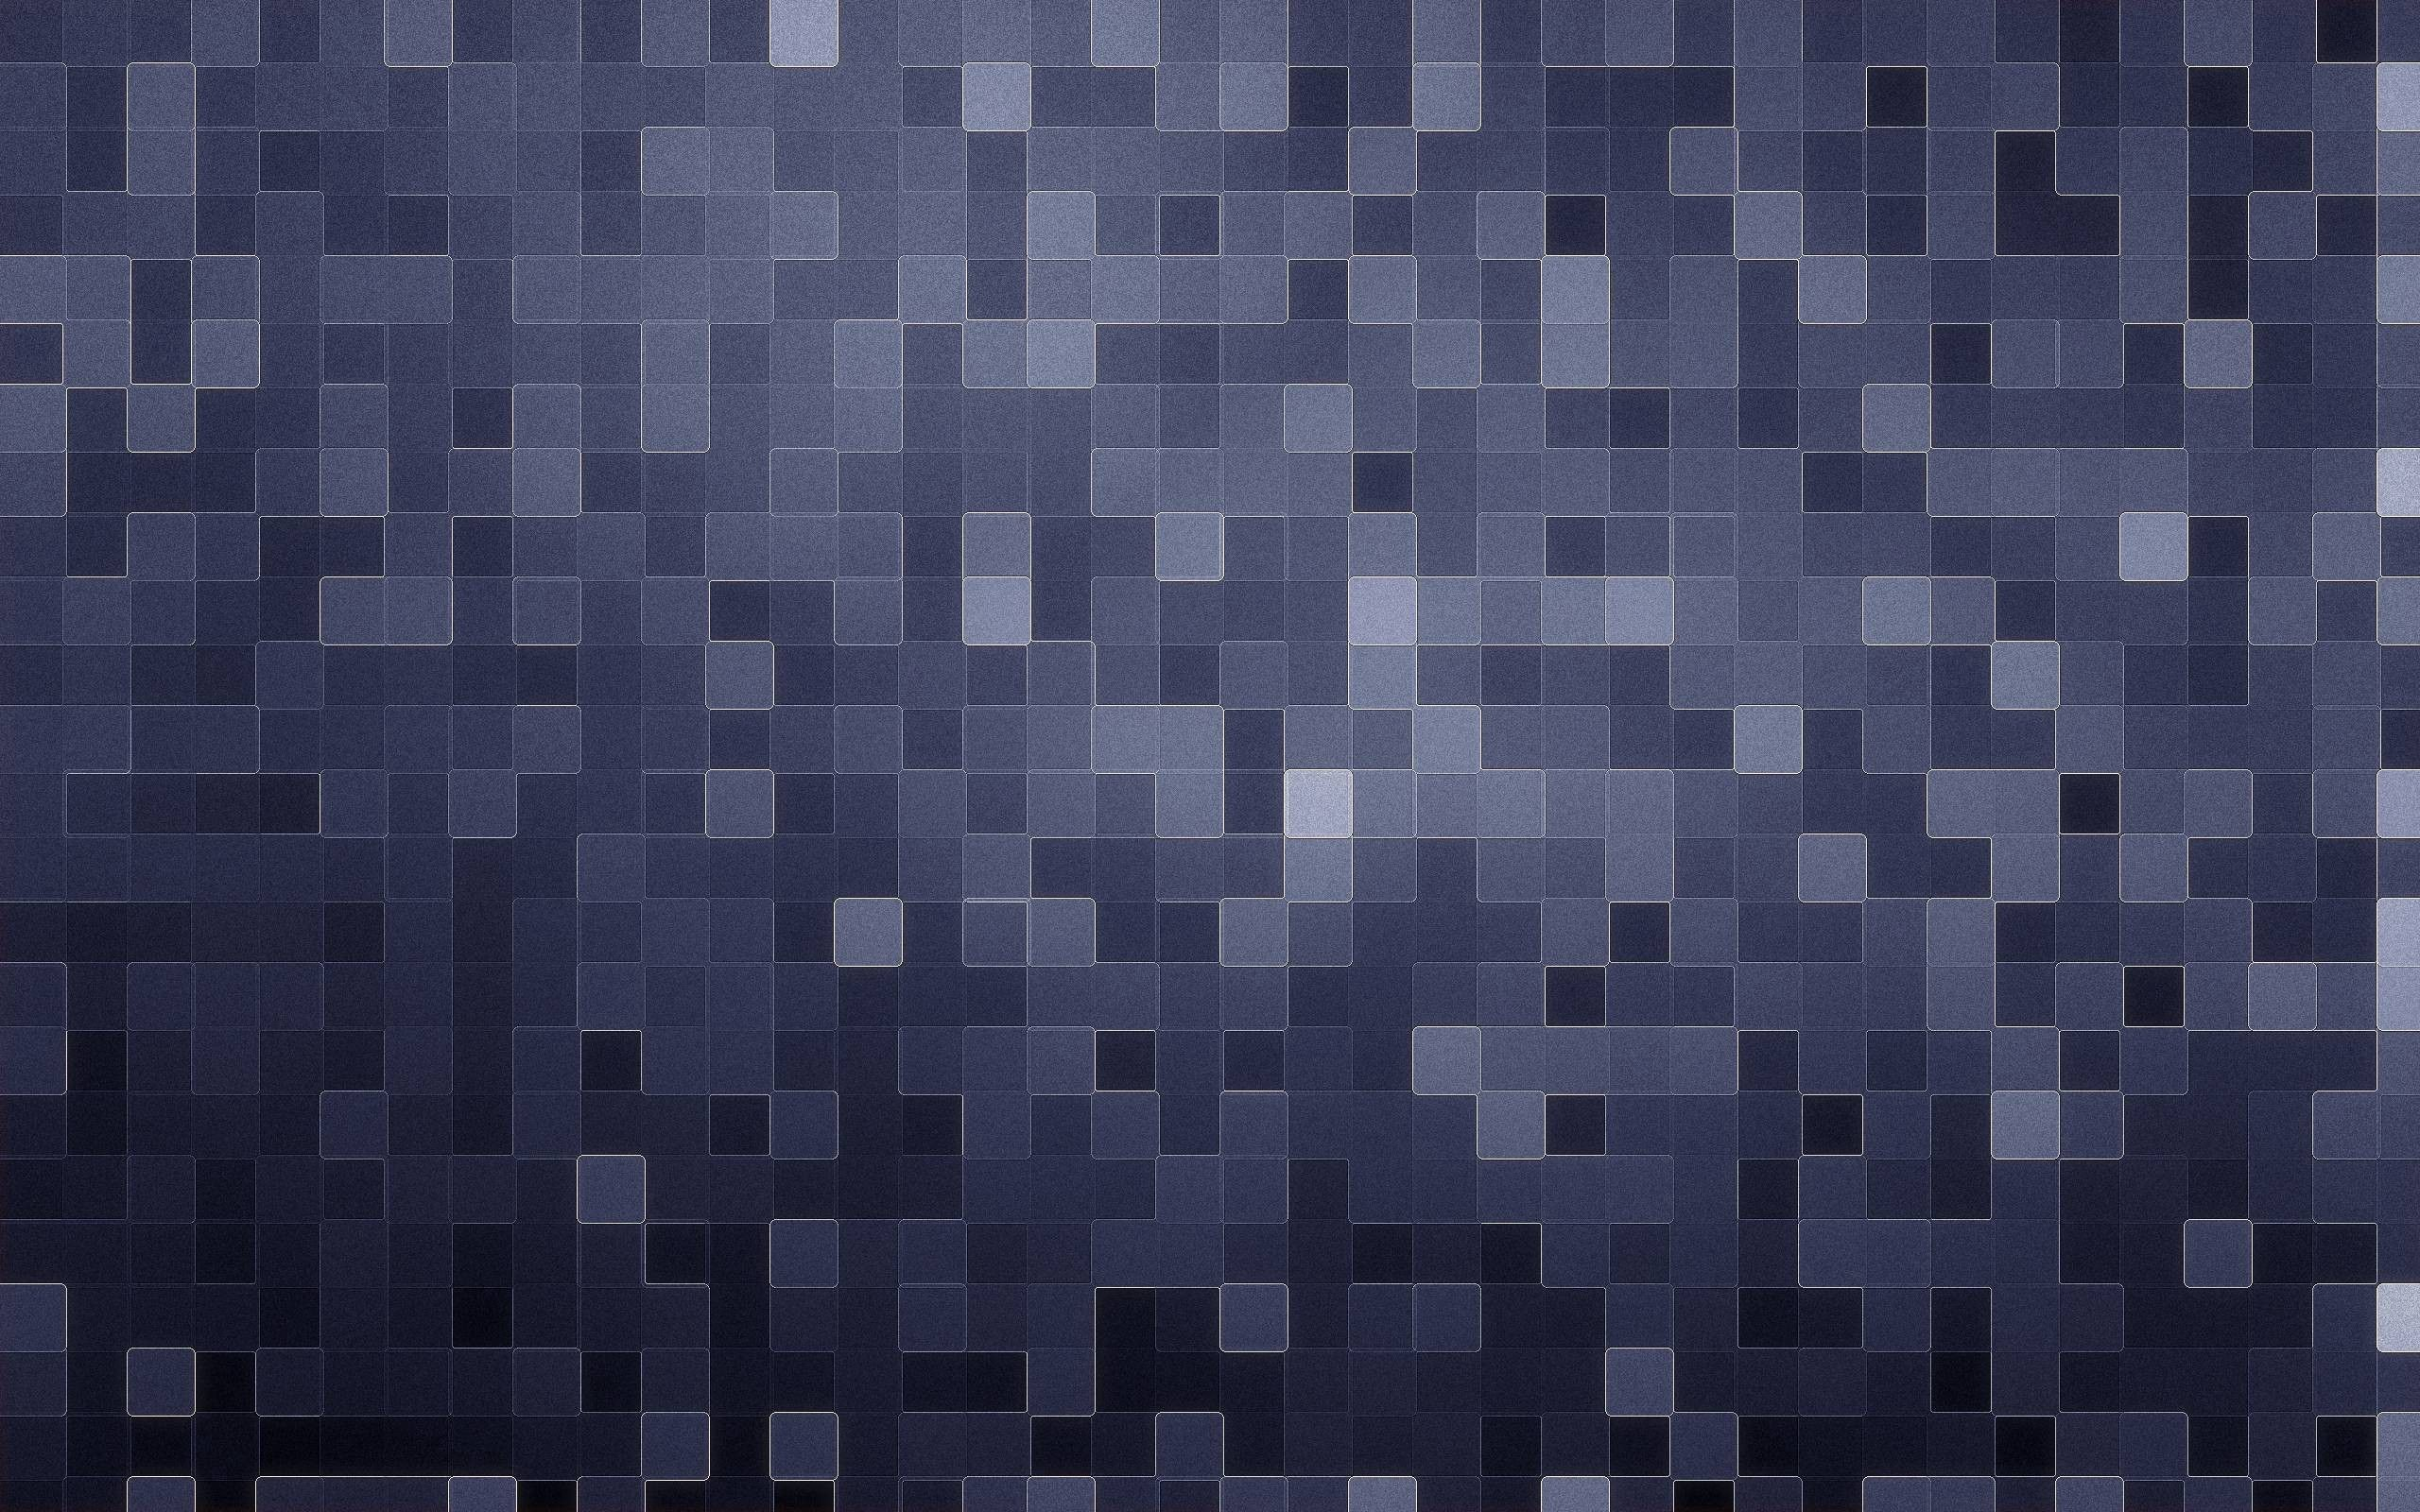 100738 download wallpaper Abstract, Points, Point, Cubes, Background, Shine, Light screensavers and pictures for free